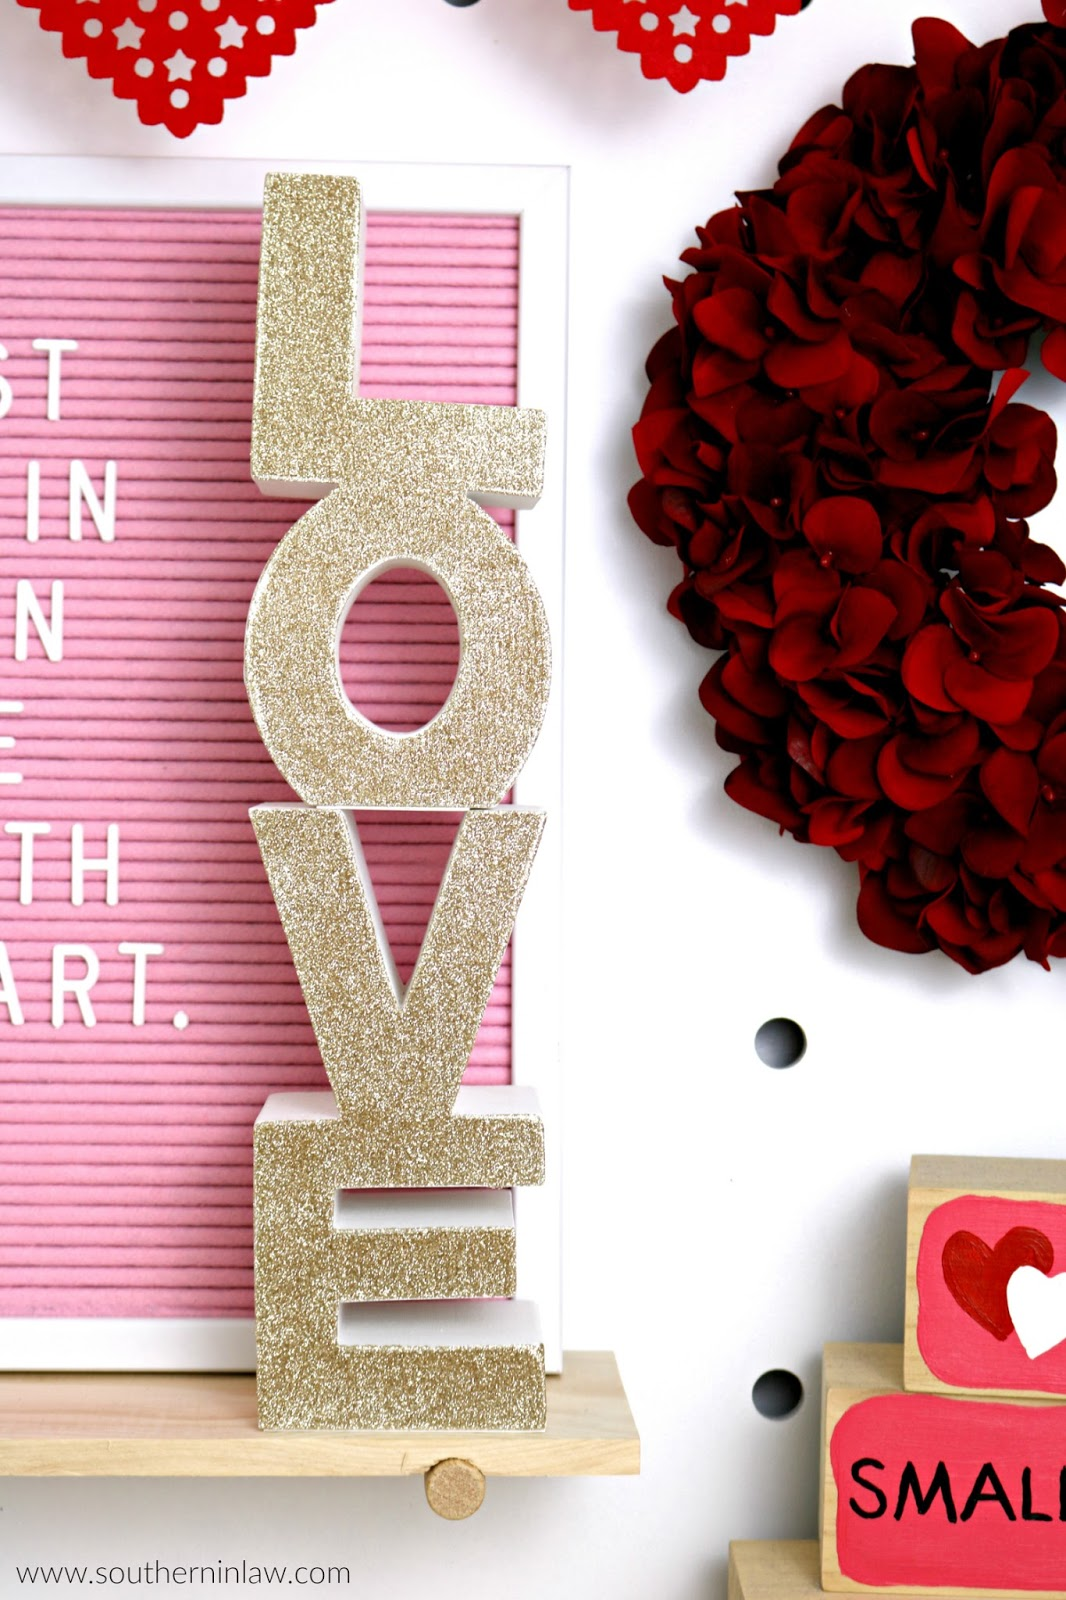 Southern In Law: February Styling: My Easy Valentine\'s Day Themed ...